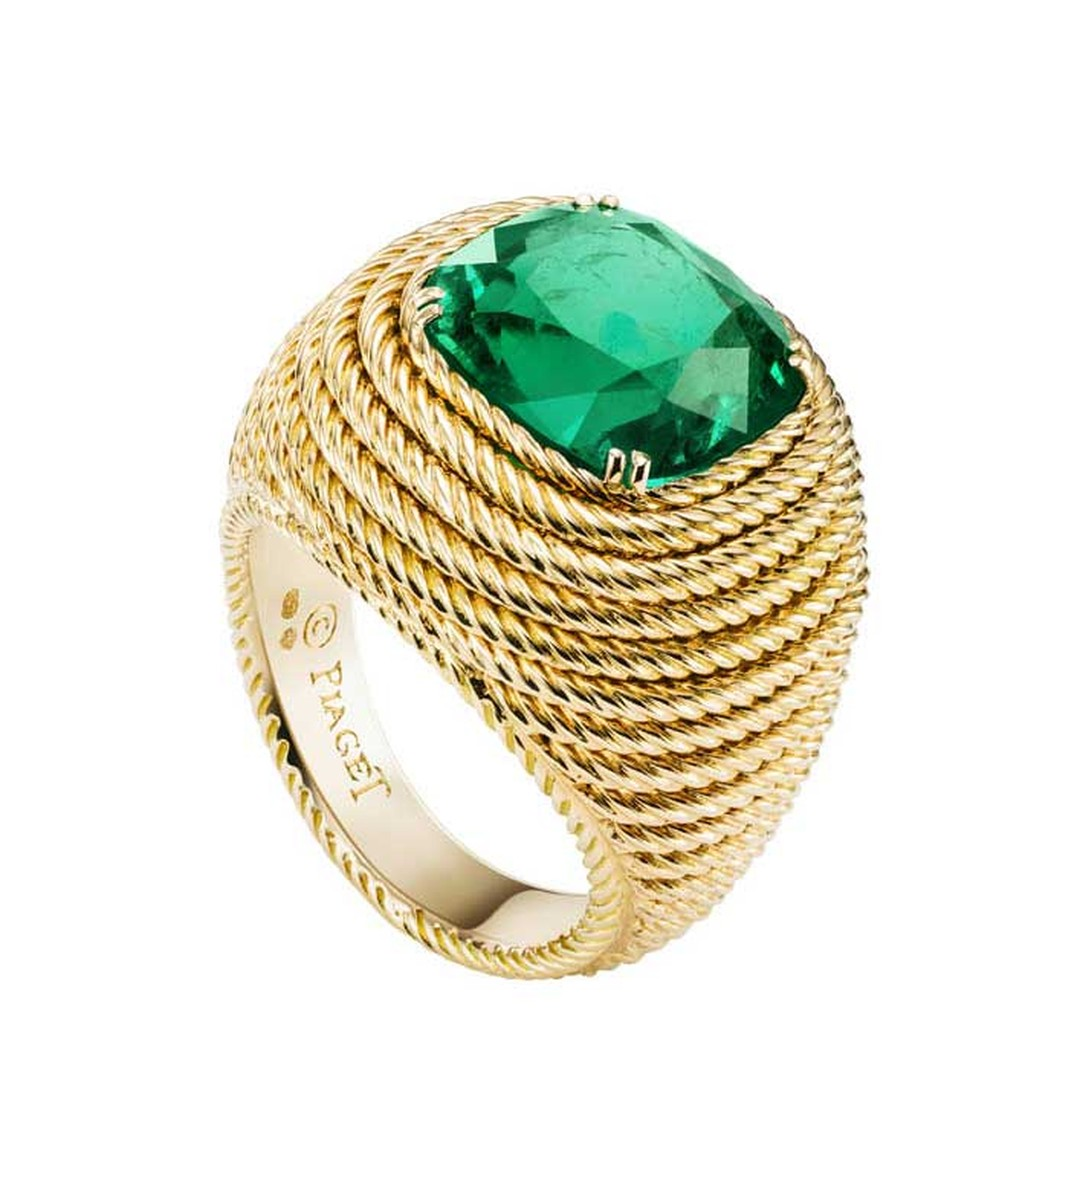 Extremely Piaget  ring in yellow gold with a 7.30ct cushion-cut emerald surrounded by gold ropes.